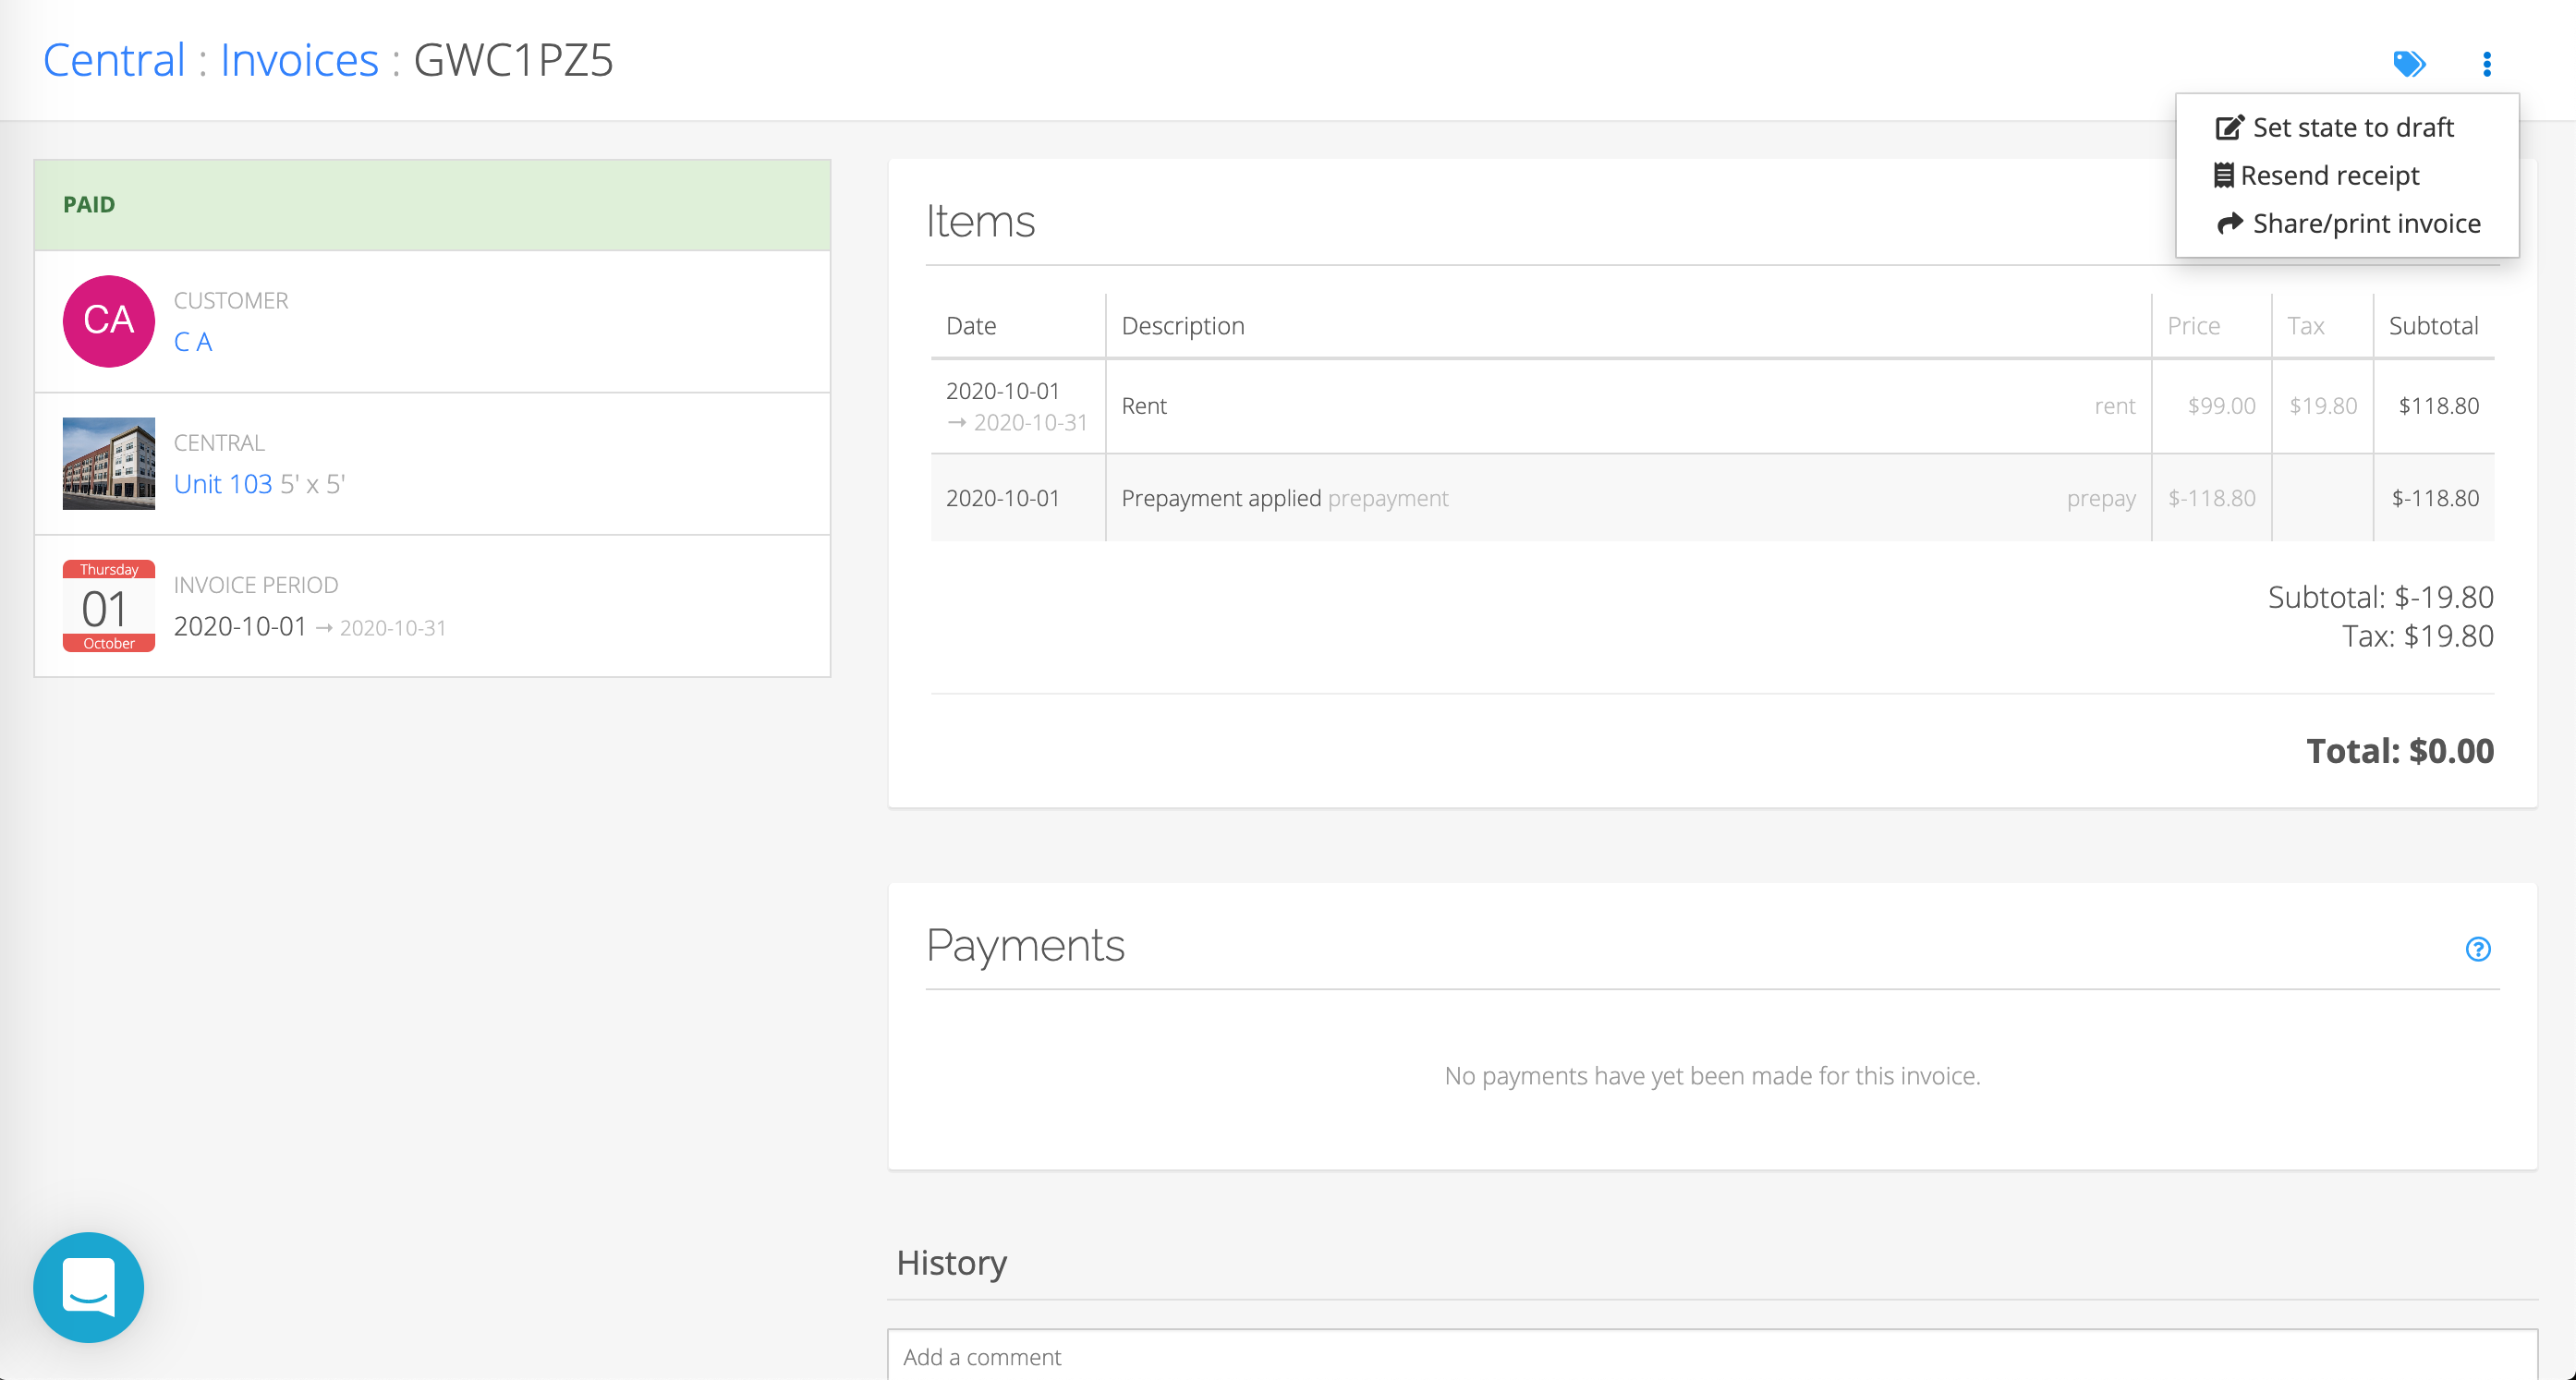 updating invoice items